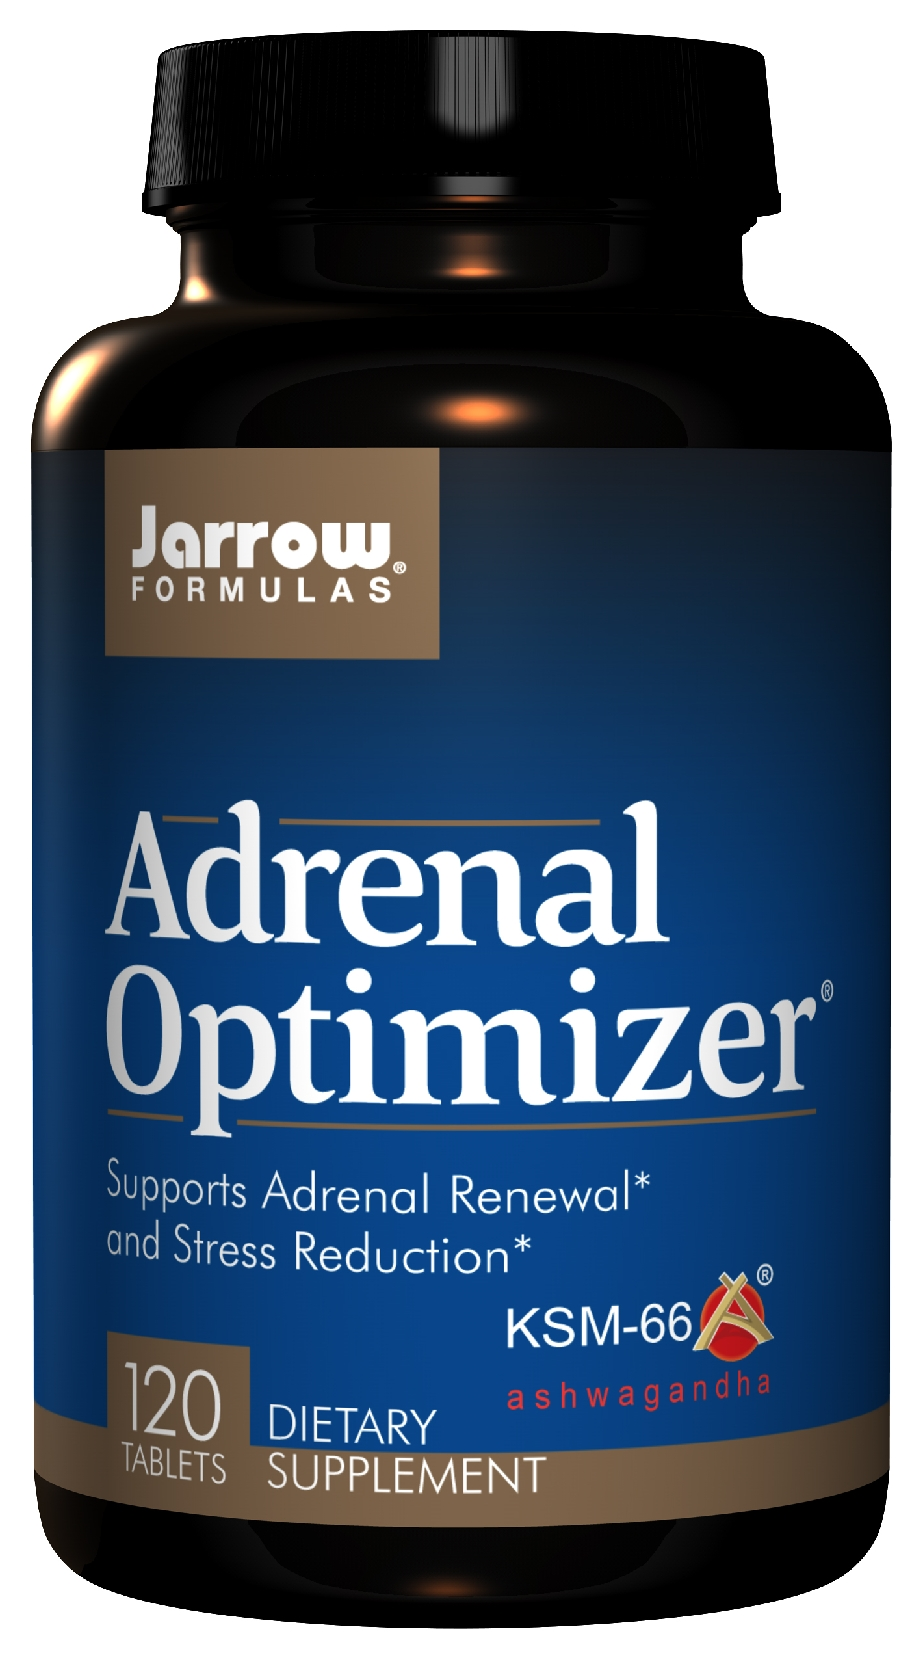 Adrenal Optimizer 120 tabs by Jarrow Formulas